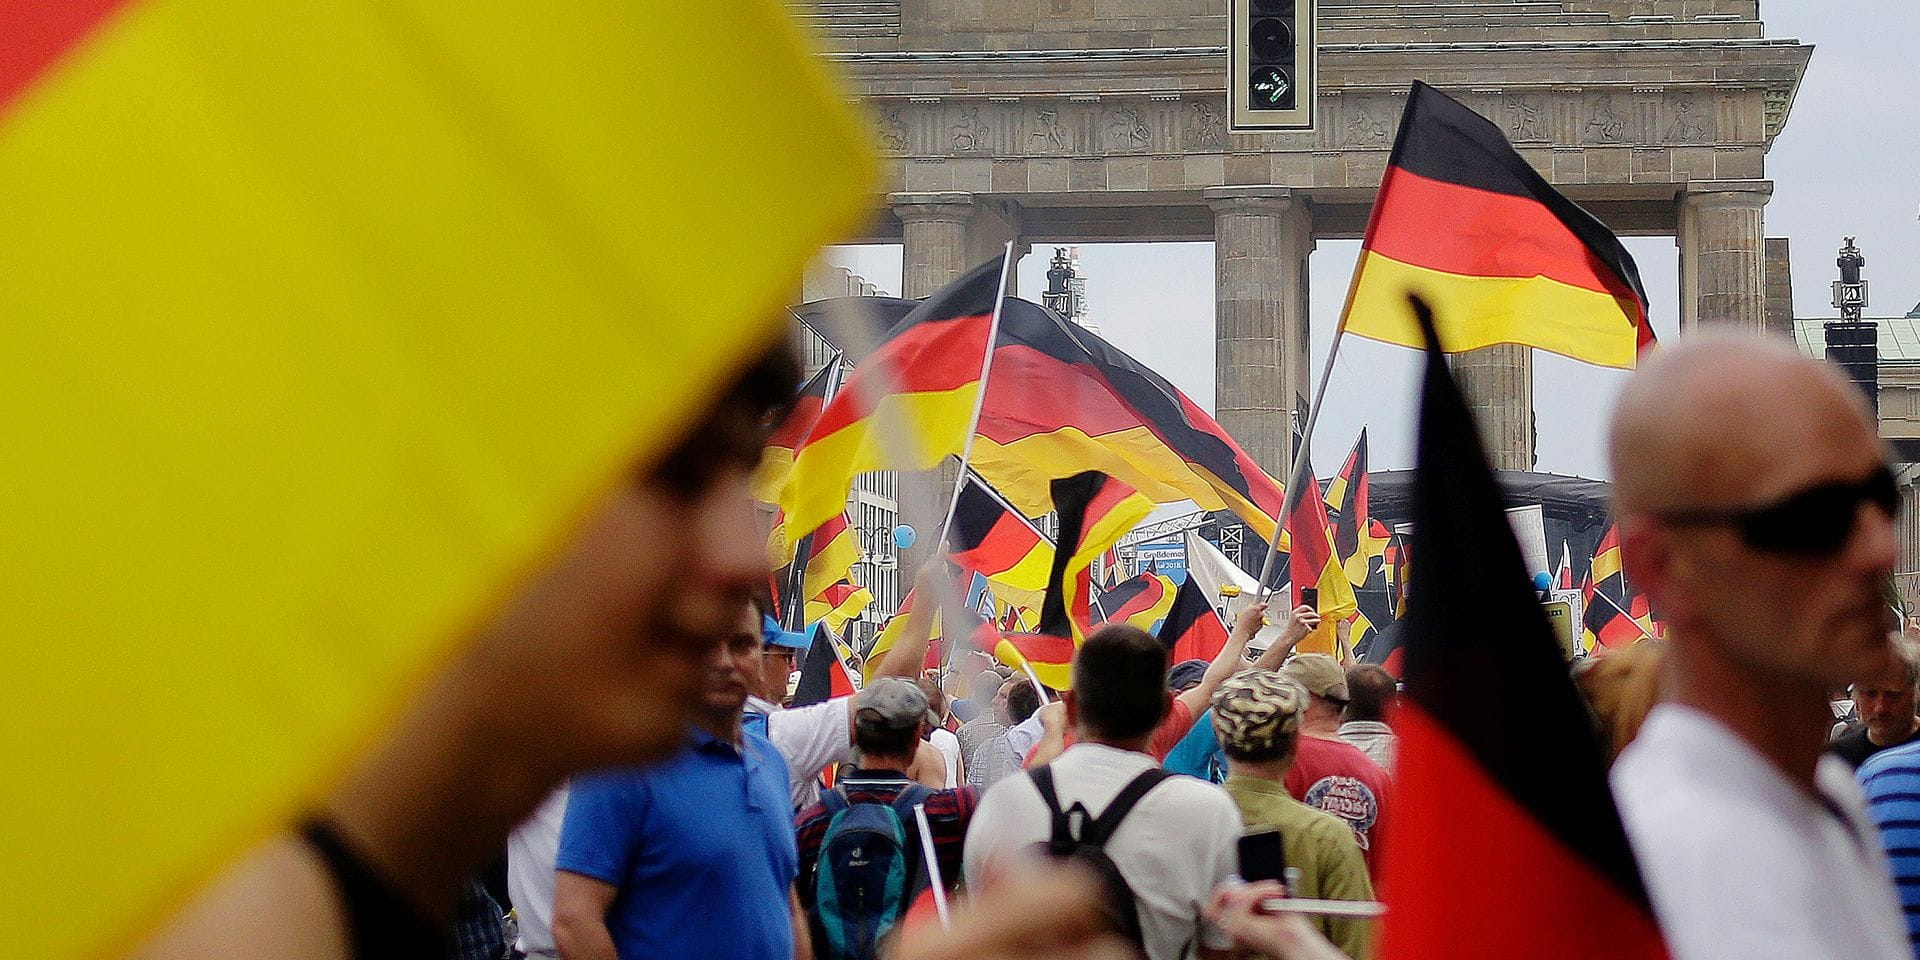 AfD supporters wave flags in front of the Brandenburg Gate in Berlin, Germany, Sunday, May 27, 2018. The AfD that swept into Parliament last year on a wave of anti-migrant sentiment is staging a march Sunday through the heart of Berlin to protest against the government. (AP Photo/Markus Schreiber)